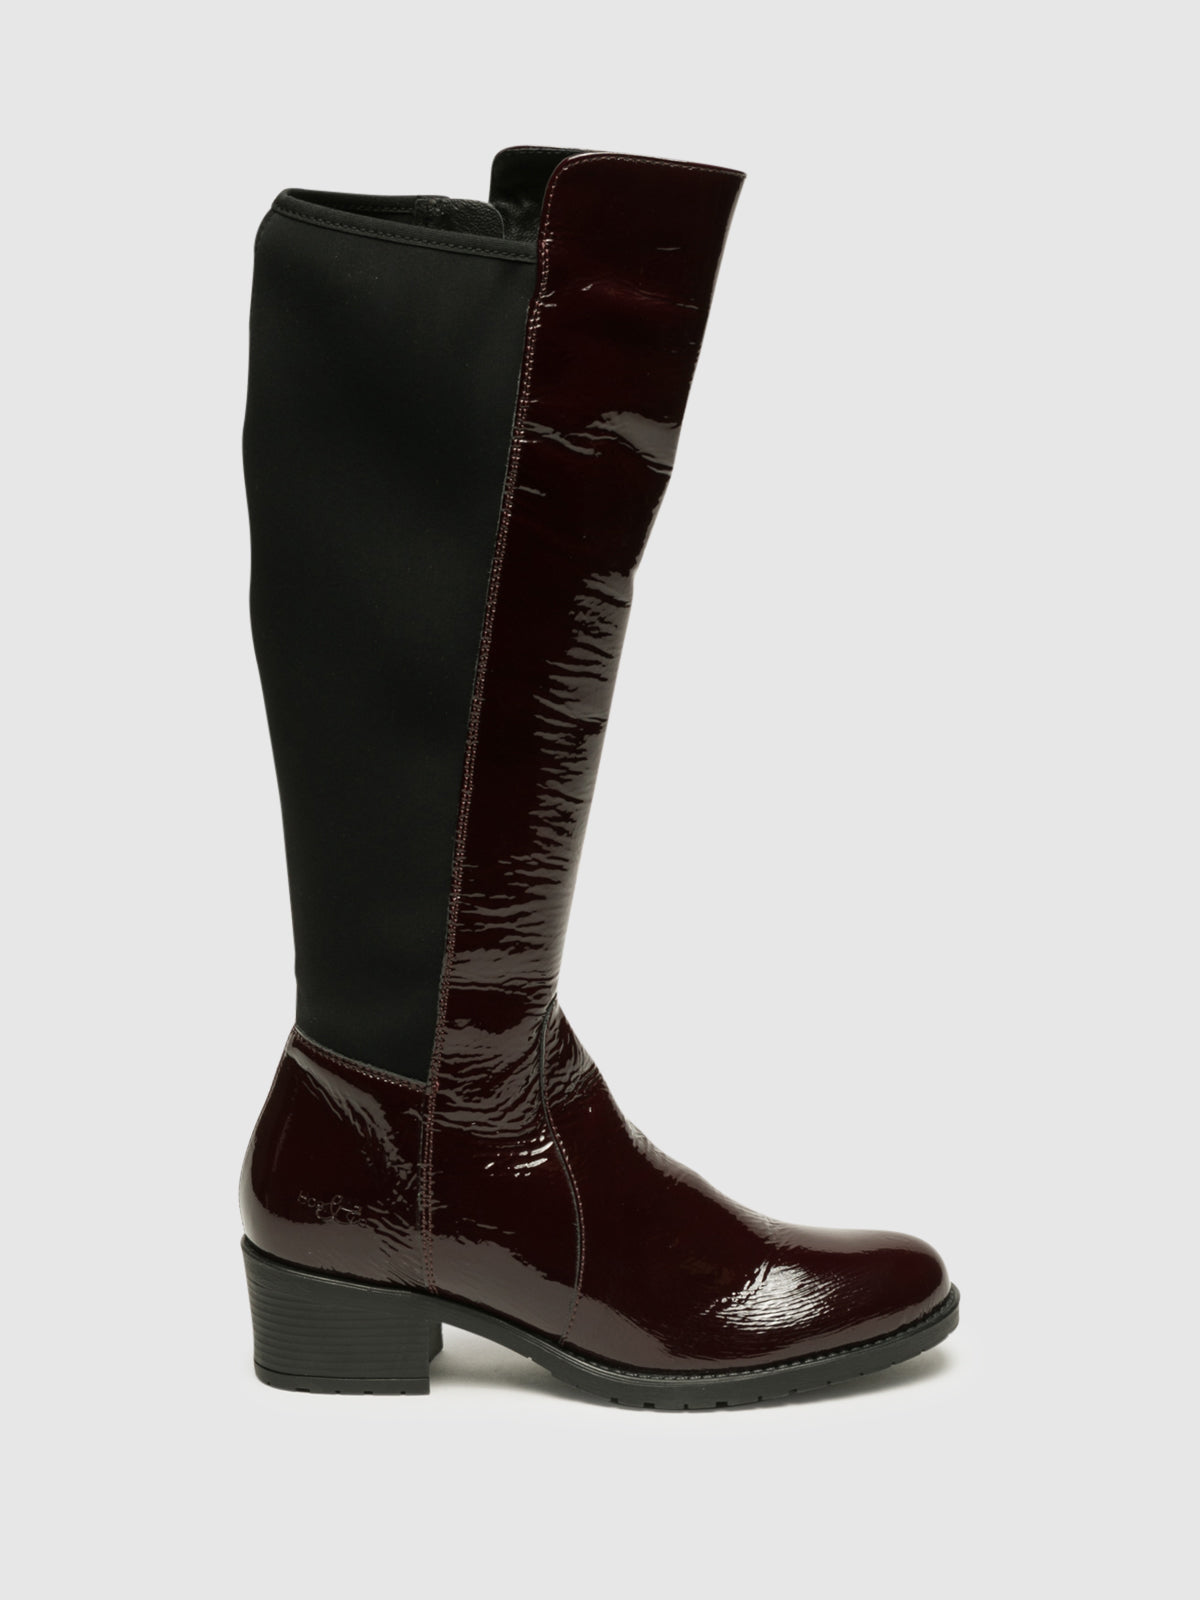 Bos&Co DarkRed Knee-High Boots